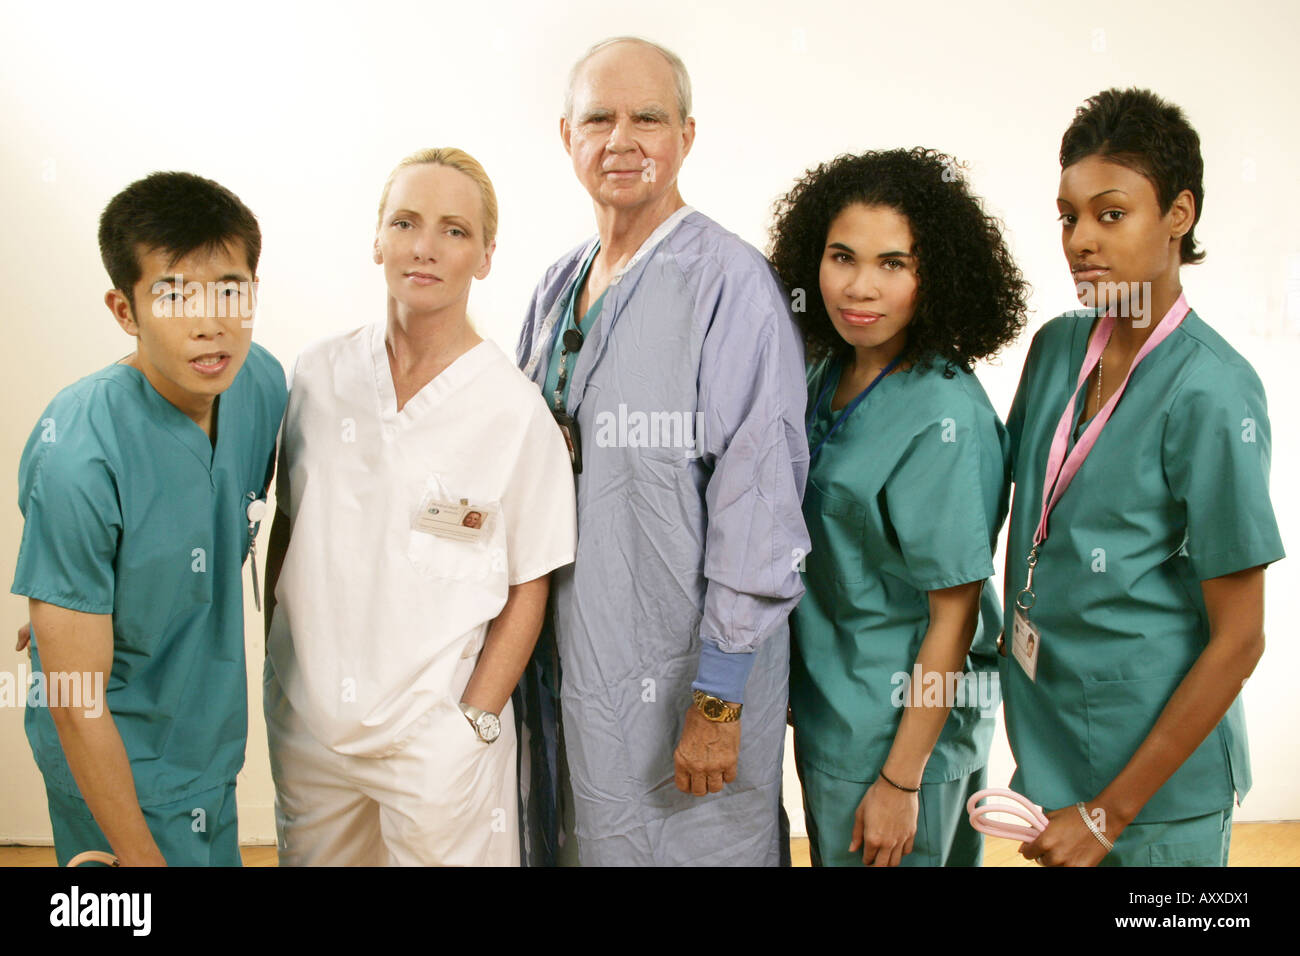 Grouping of medical personnel, - Stock Image